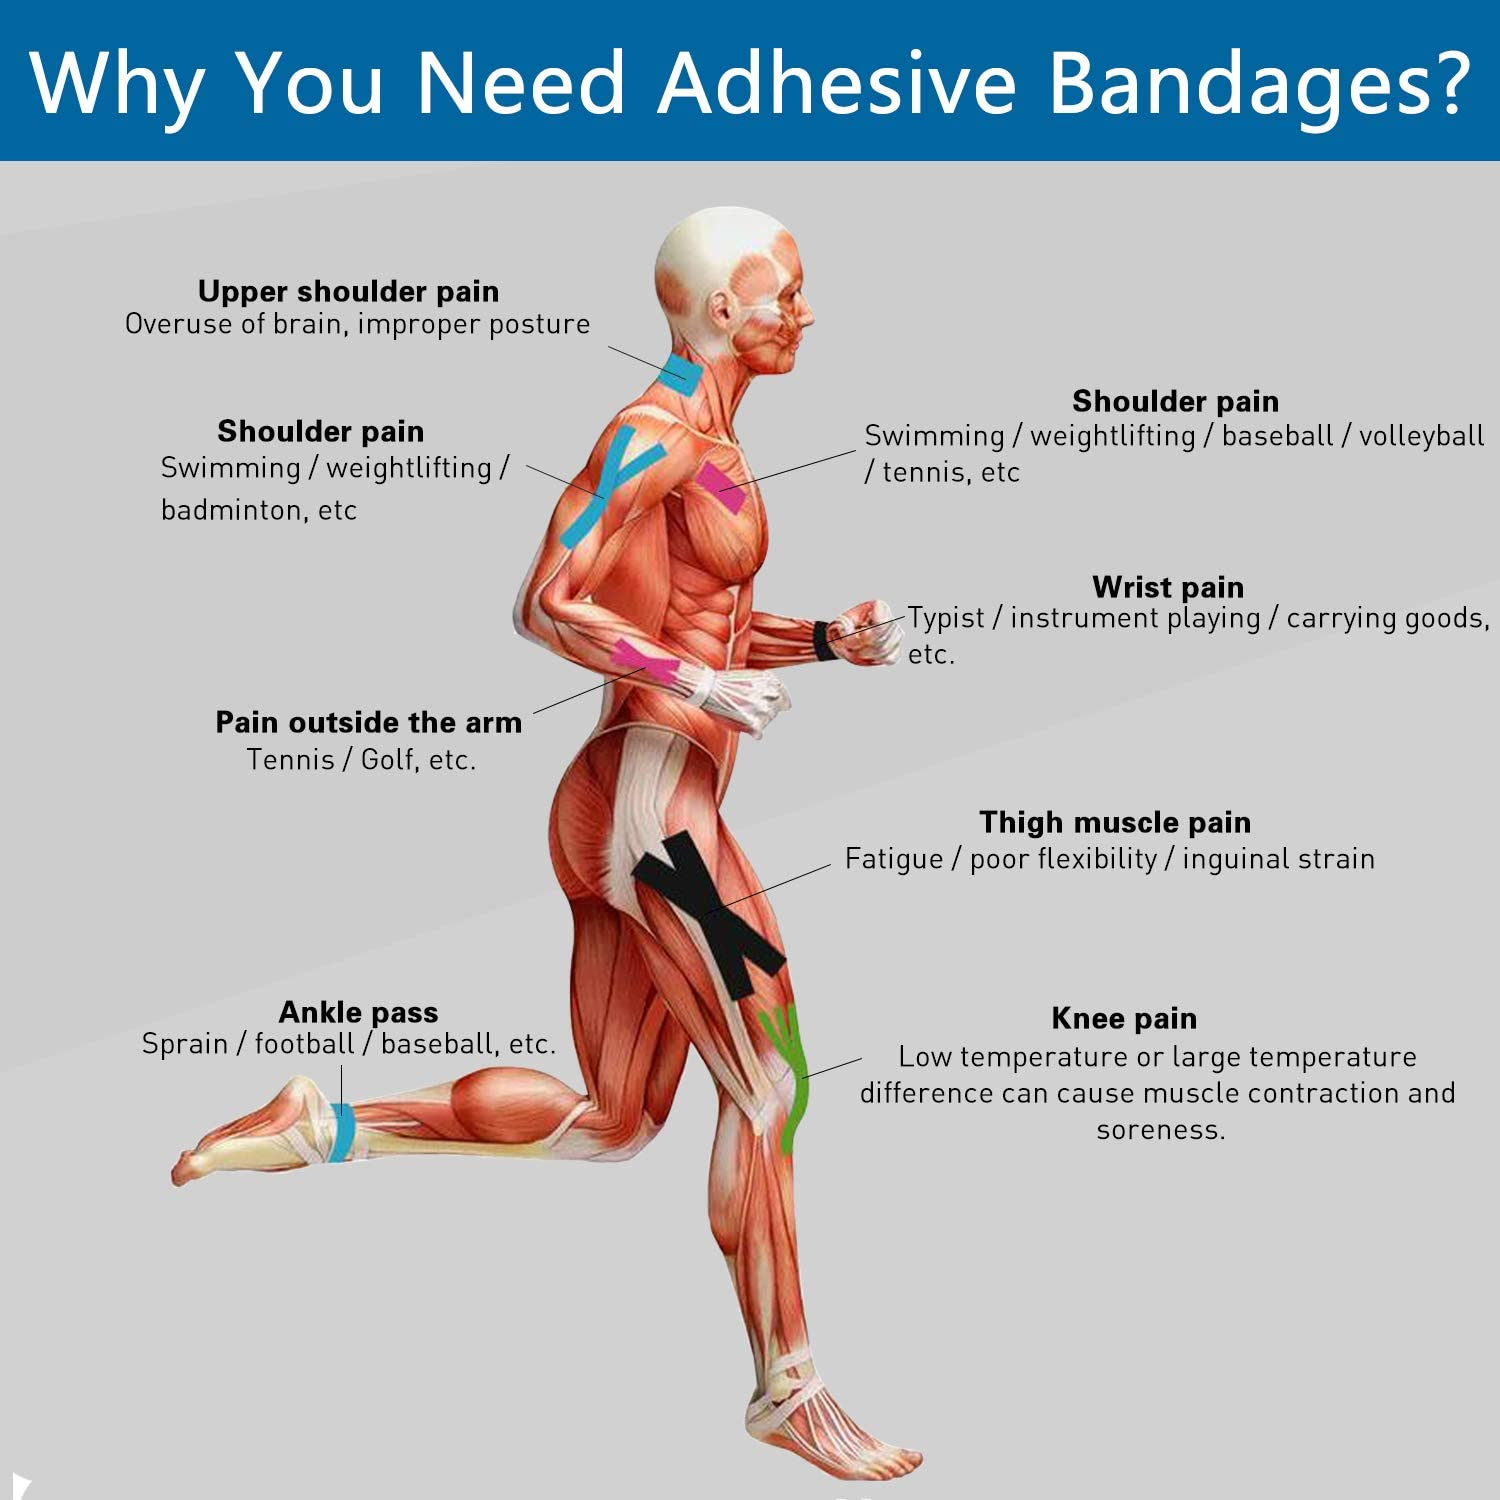 """Self Adhesive Wrap Cohesive Wrap Bandages 6 Count 3"""" x 5 Yards, Medical Tape, Adhesive Flexible Breathable First Aid Non Woven Rolls, Stretch Athletic, Ankle Sprains & Swelling, Sports: Health & Personal Care"""